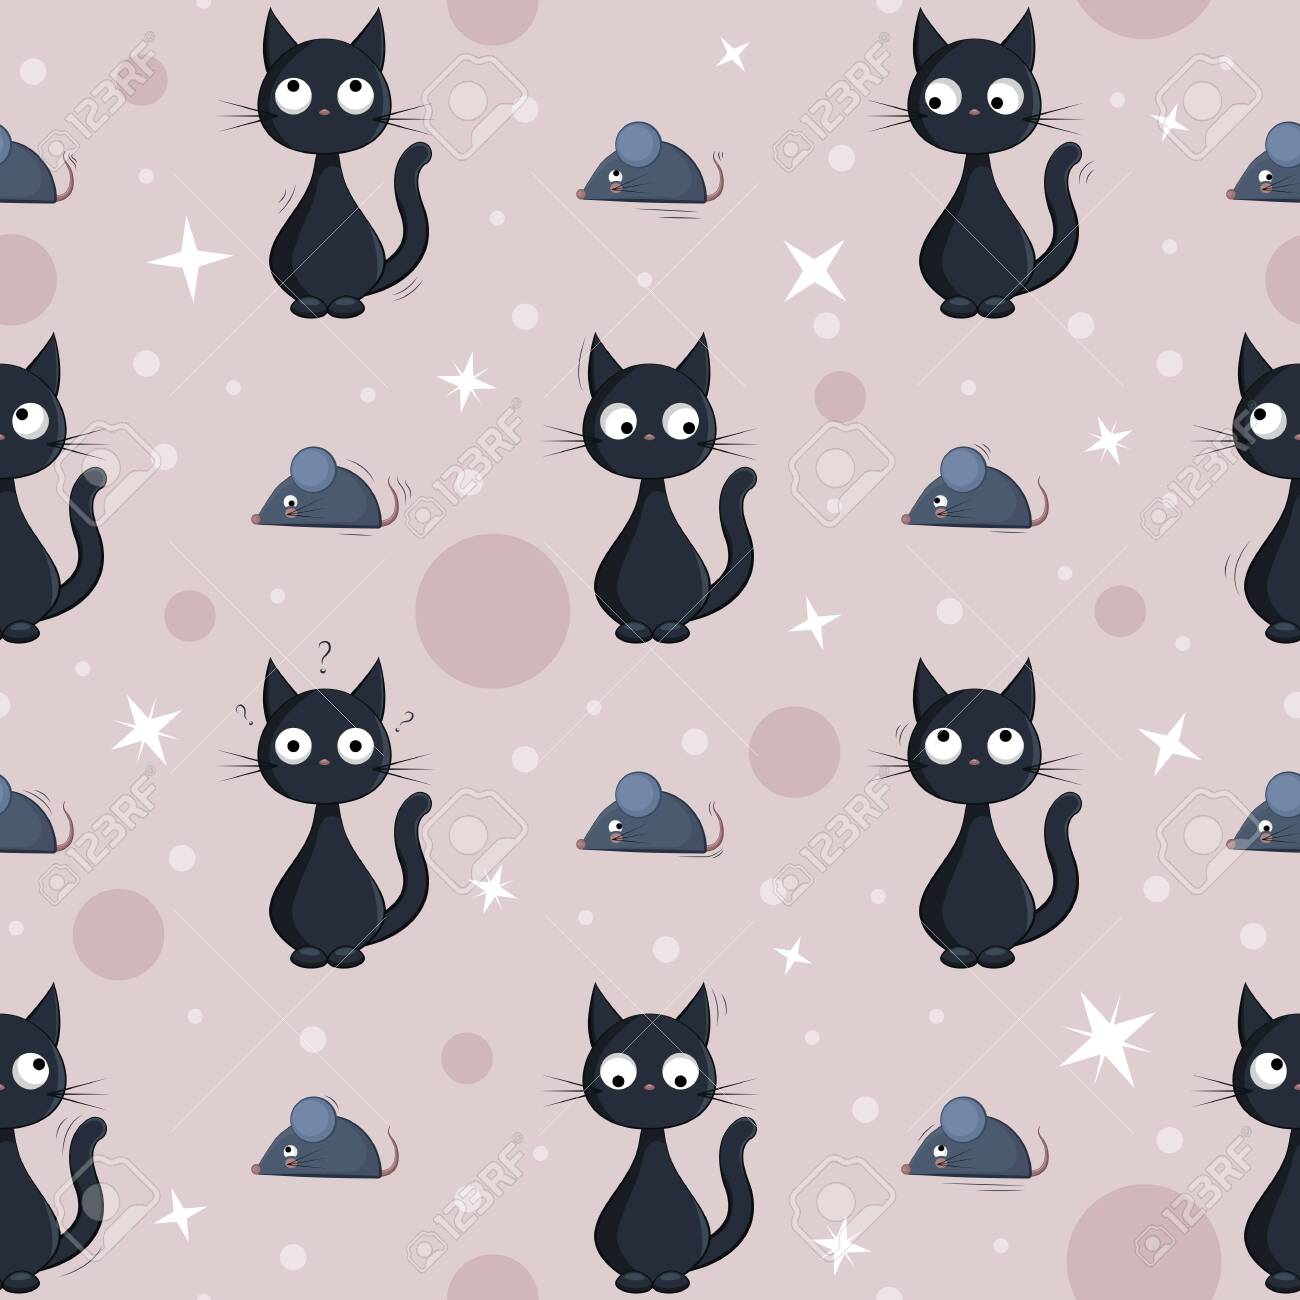 Seamless Background With Cute Cartoon Black Cats And Mouses Royalty Free Cliparts Vectors And Stock Illustration Image 137153349